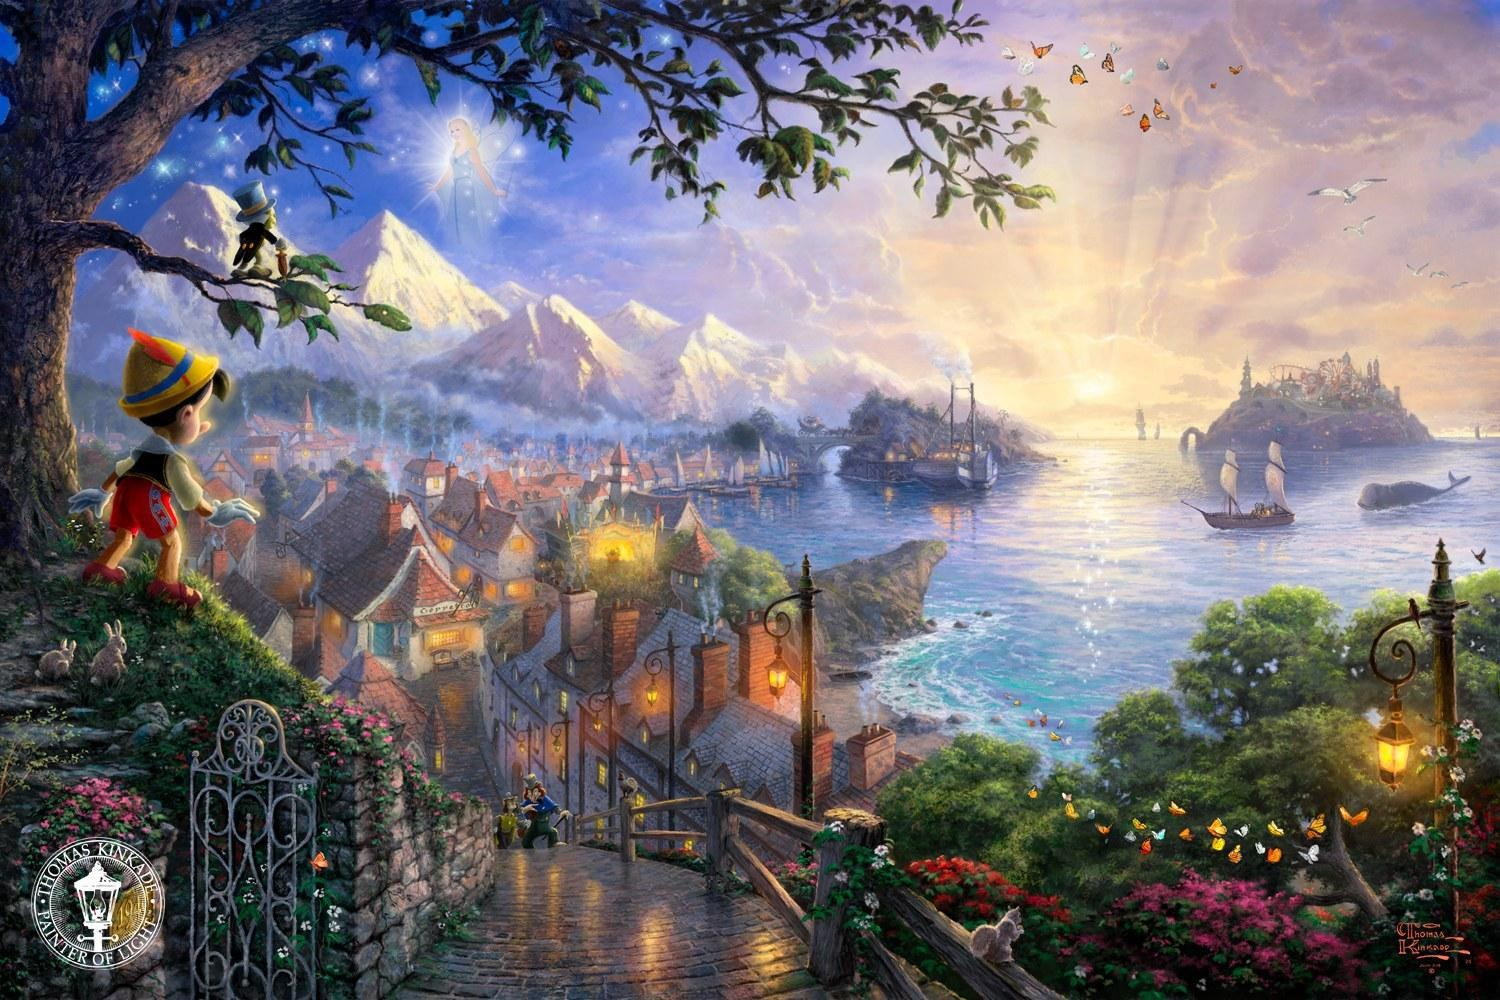 Thomas Kinkade Pinocchio Wishes Upon a Star